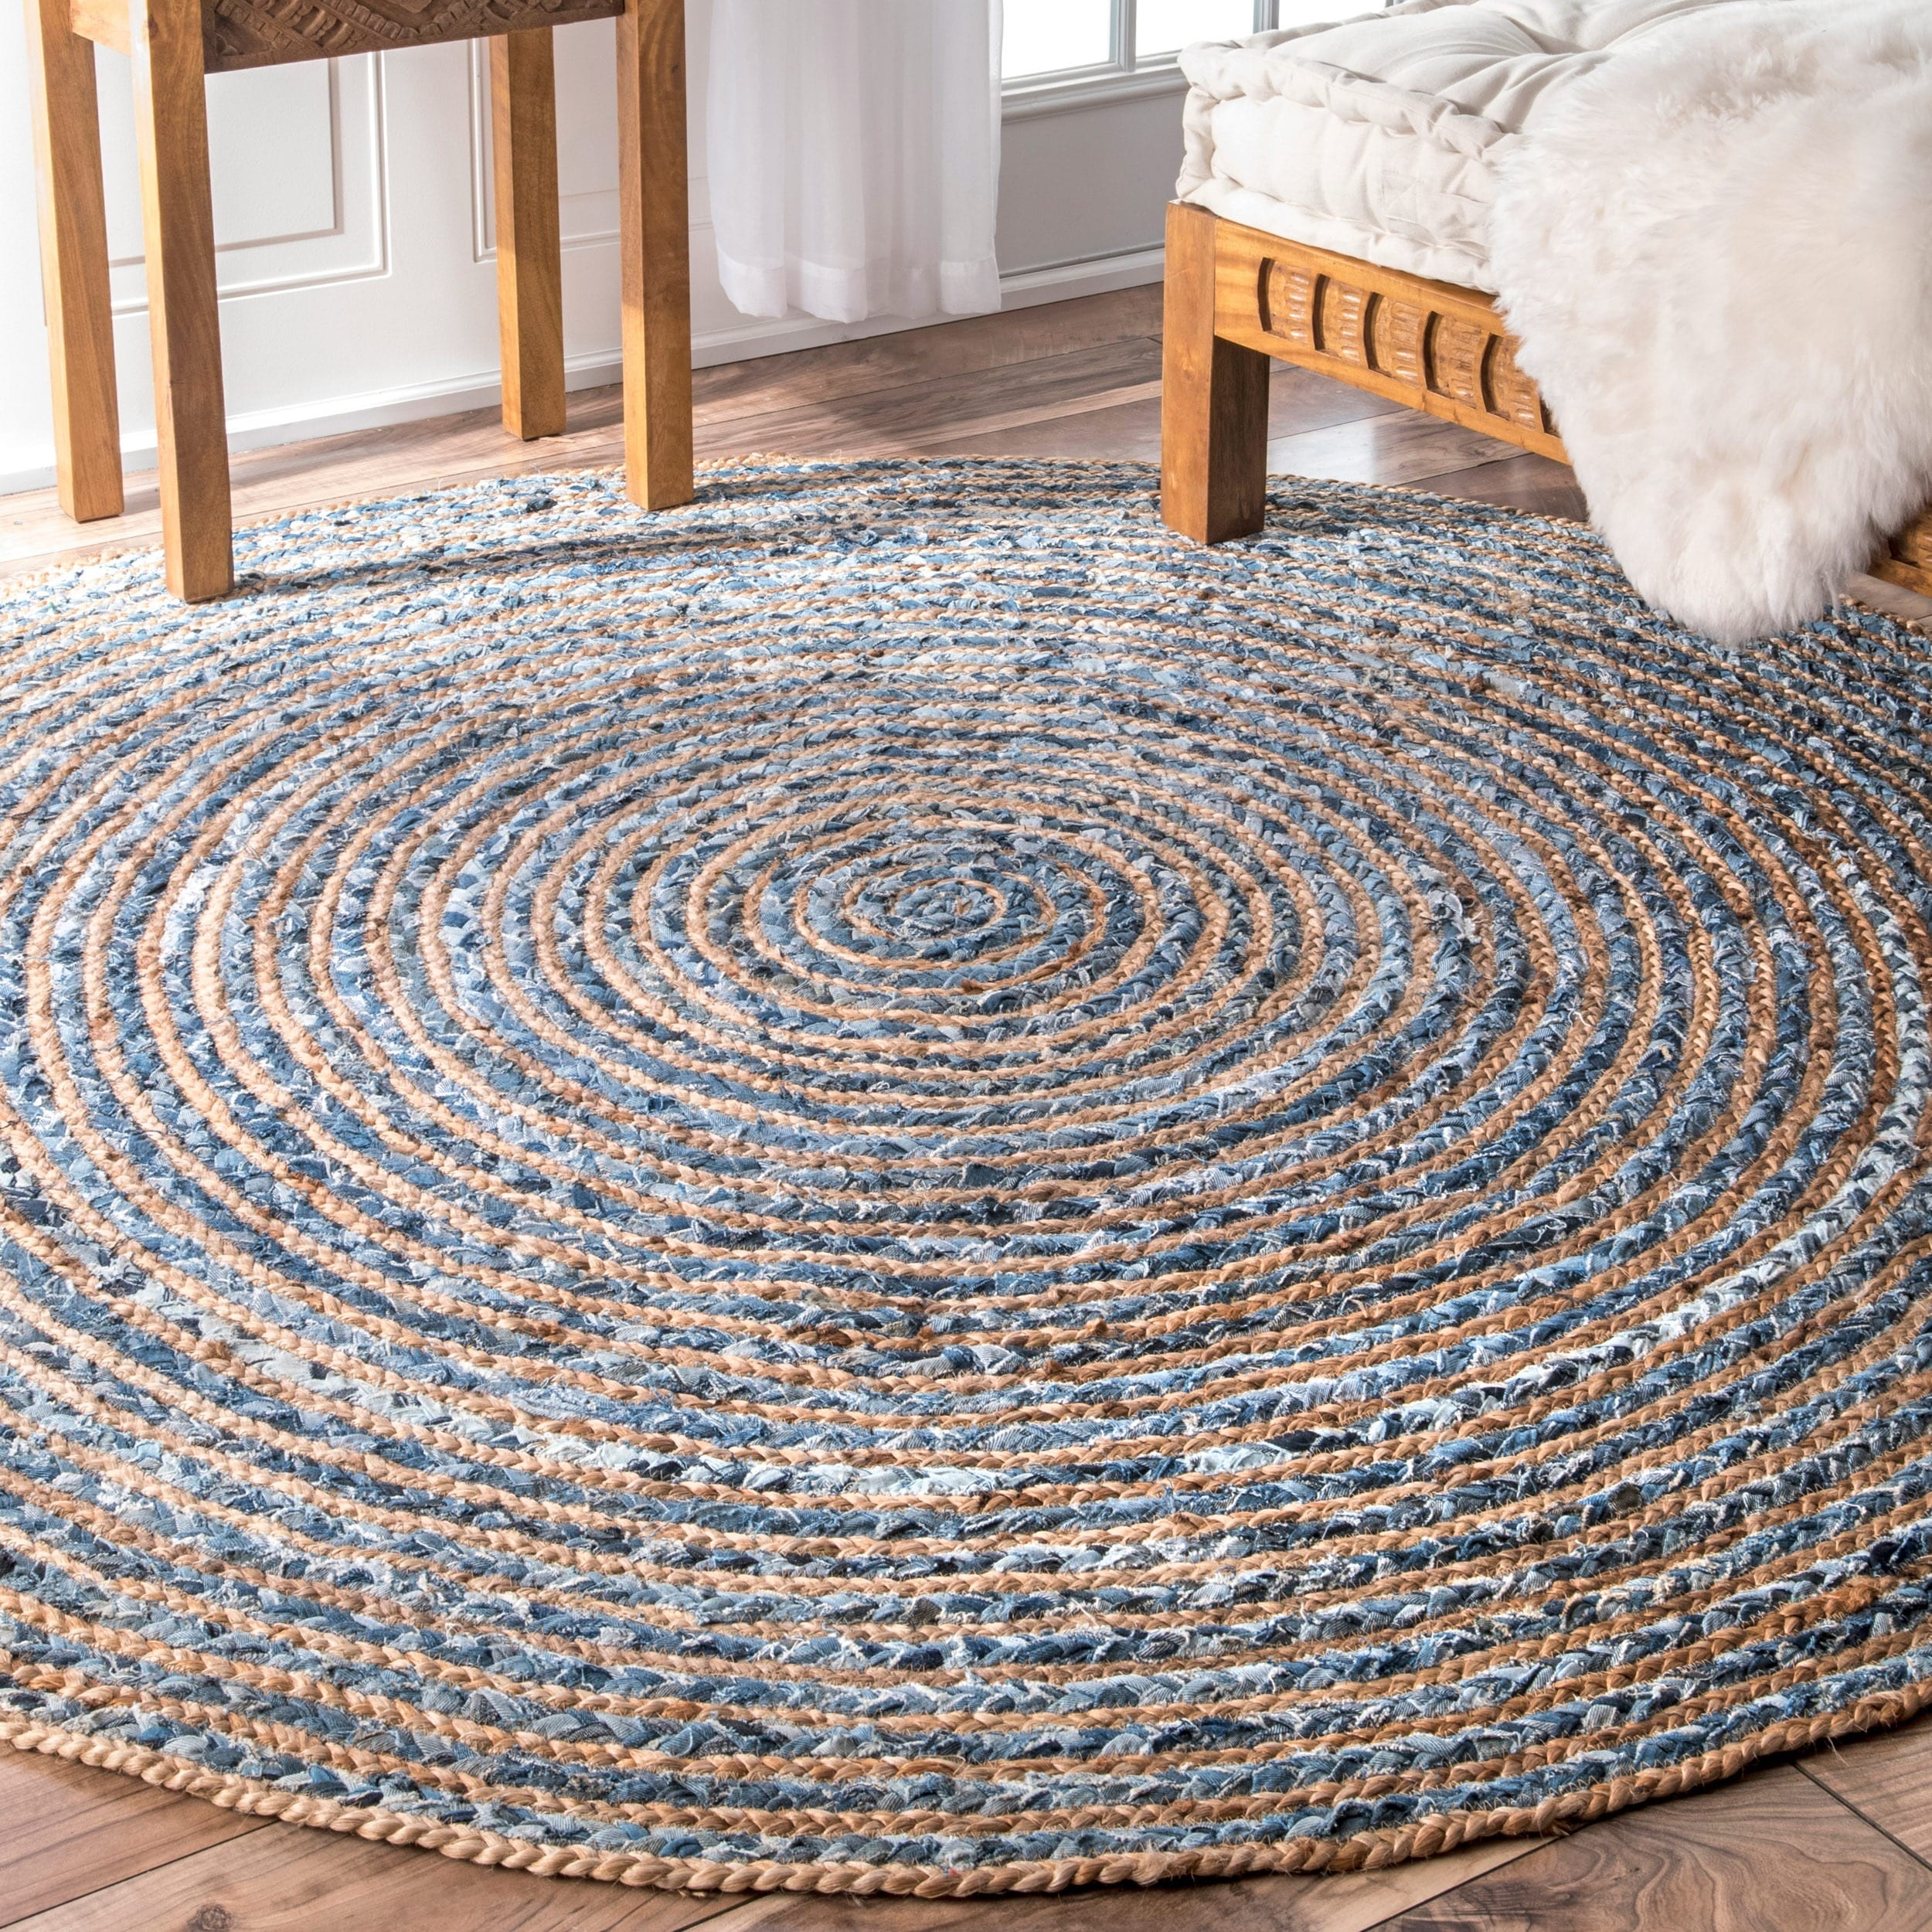 rug diy round braided rugs project